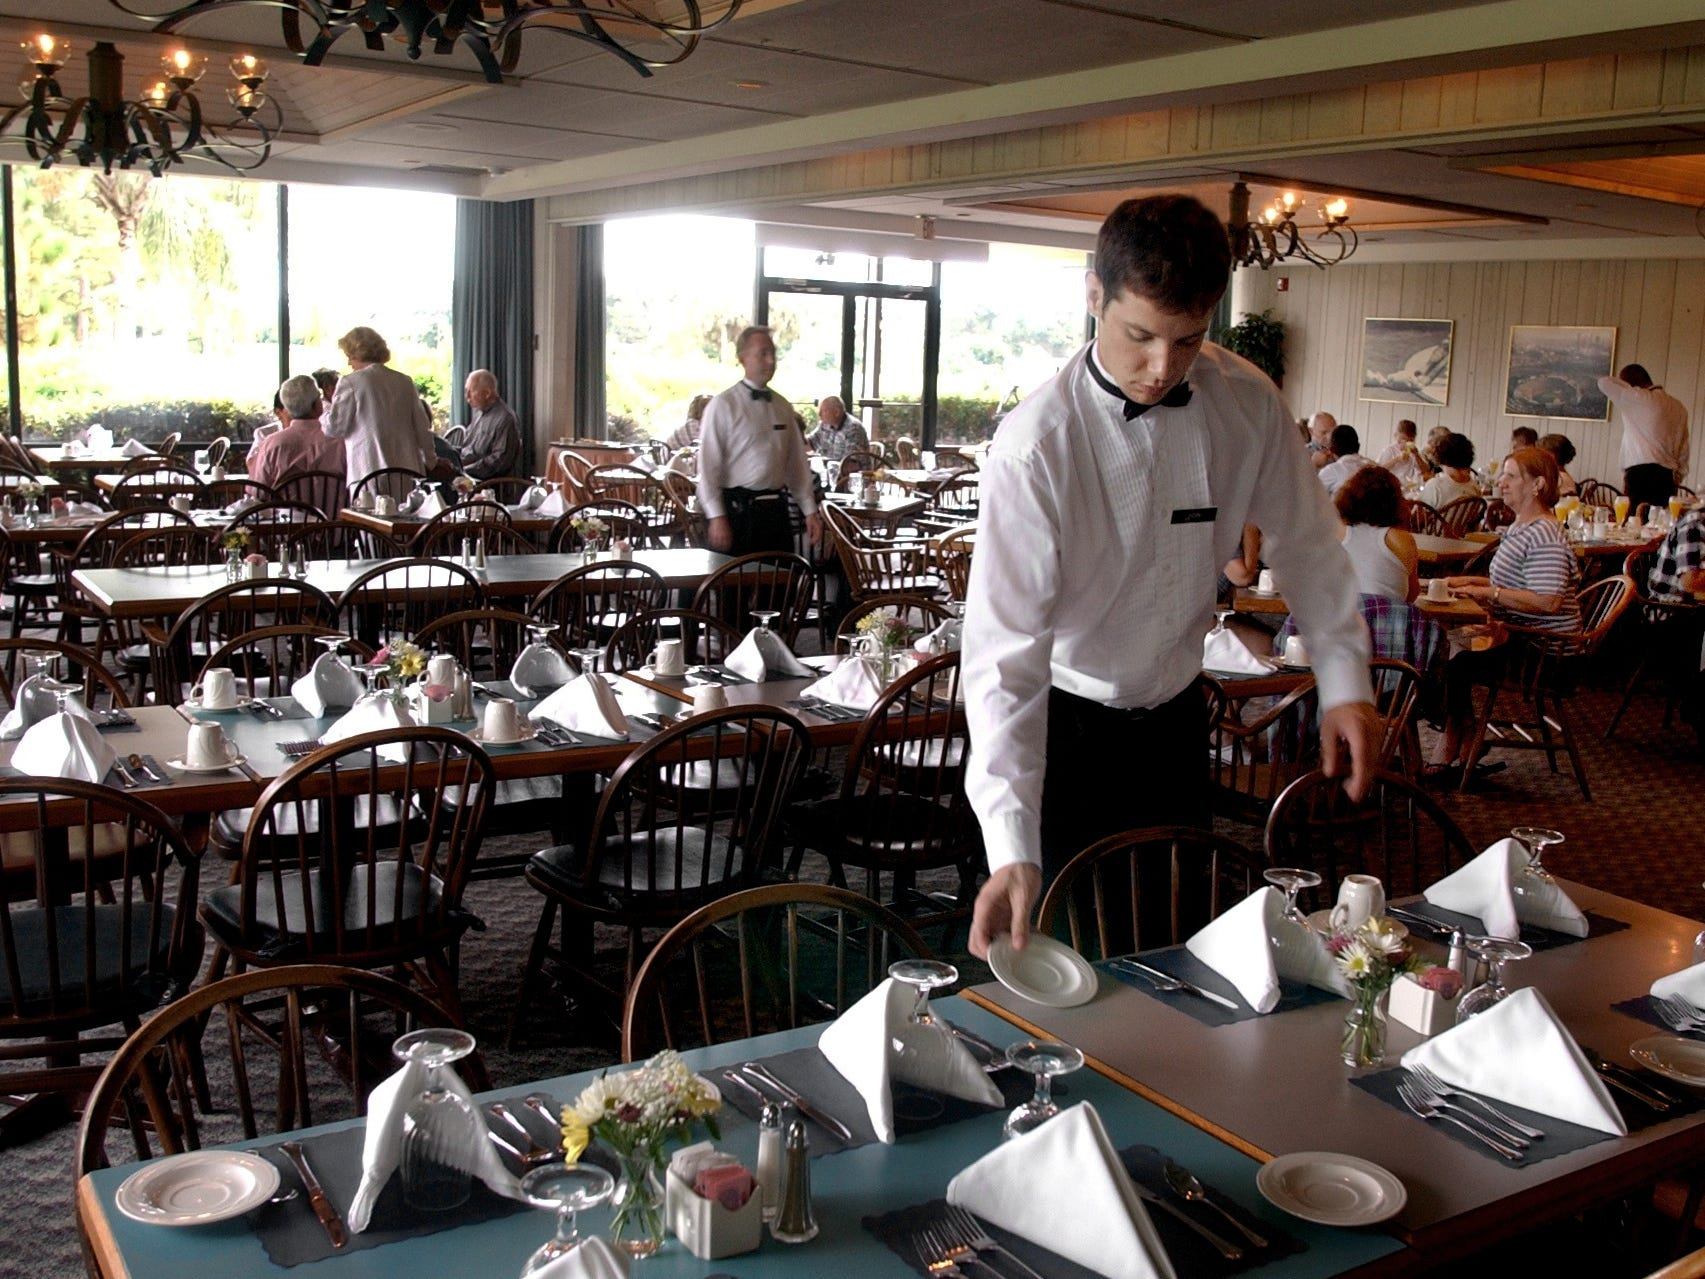 July 21, 2002 - Server Jon Kurtz sets up a table during Sunday brunch in the dining room at Dodger Pines Country Club. The Los Angeles Dodgers announced in earlier in the month that they were closing Dodger Pines Country Club Aug. 4, 2002, in advance of a pending sales contract with two Vero Beach developers who planned to build an 800-unit residential golf community on the property.